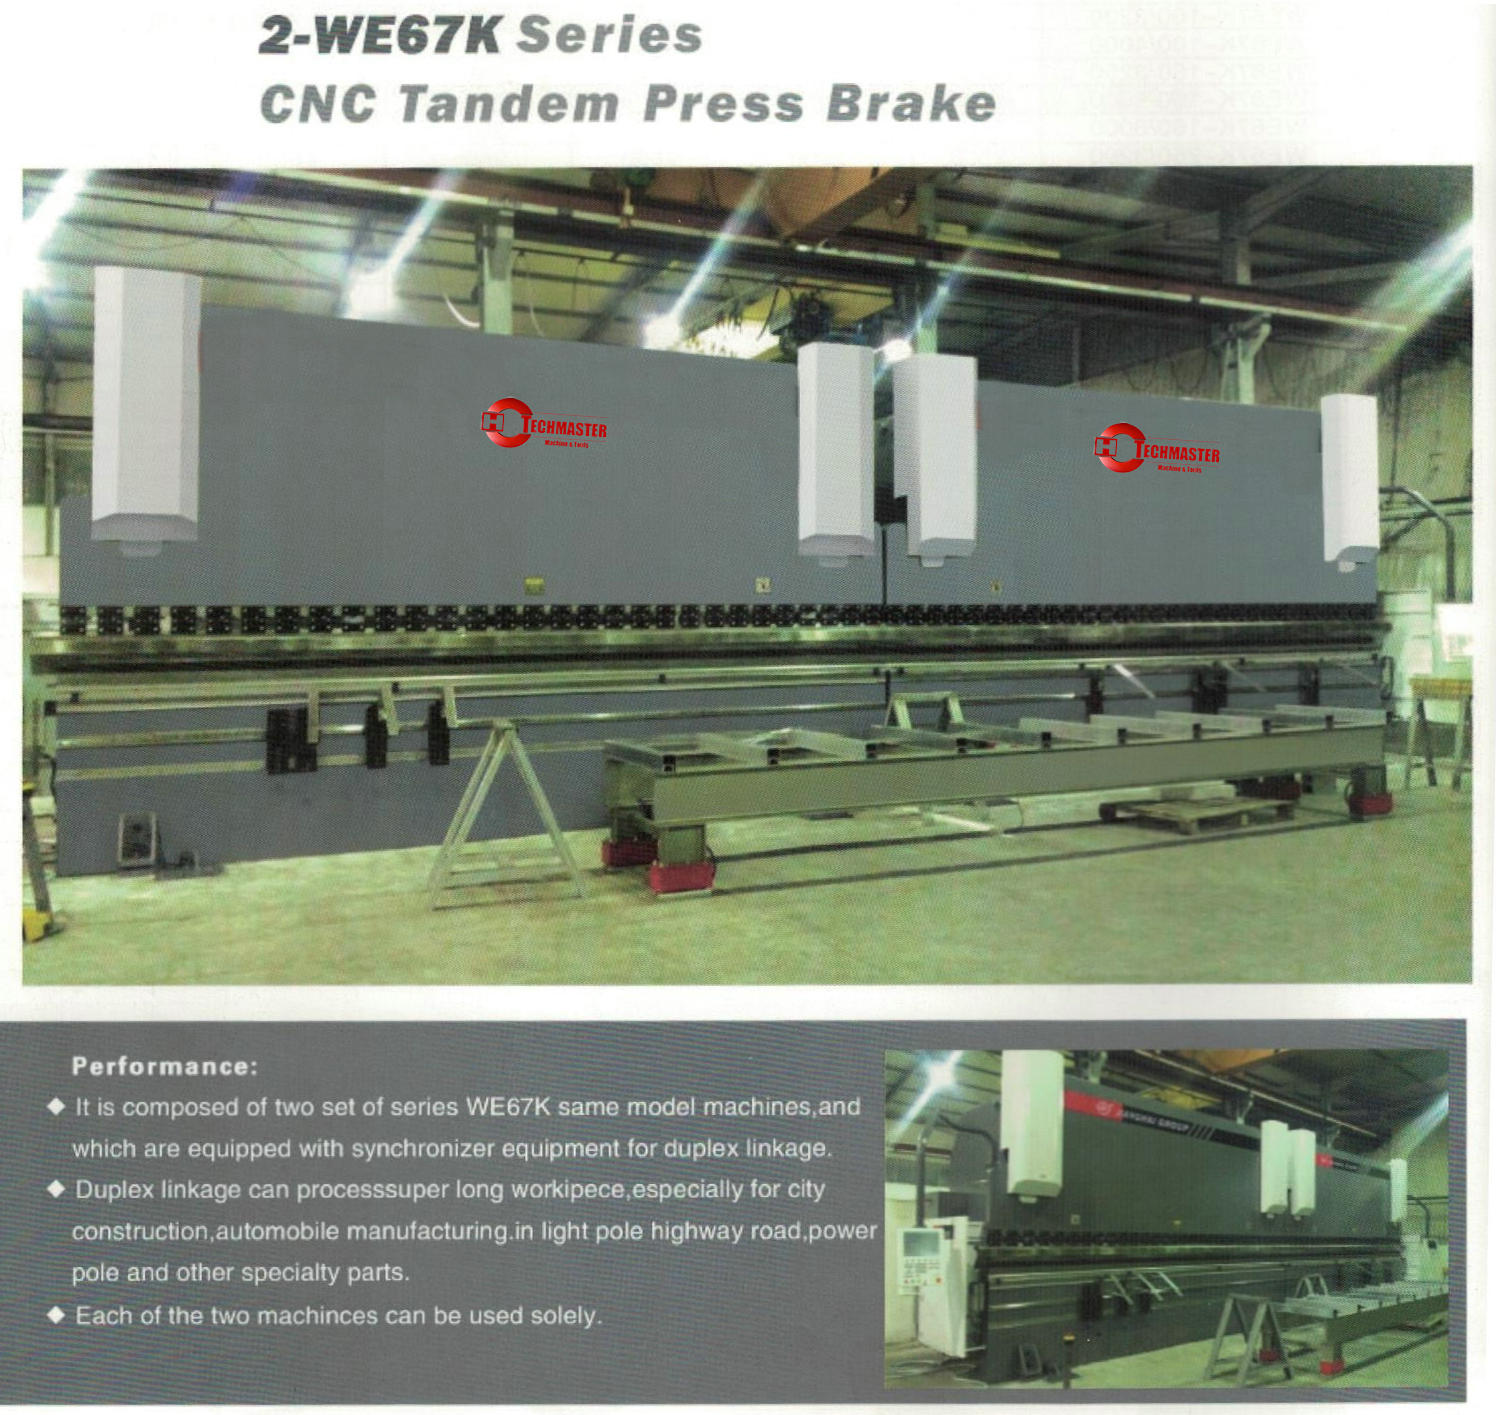 2-WE67K CNC TANDEM PRESS BRAKE